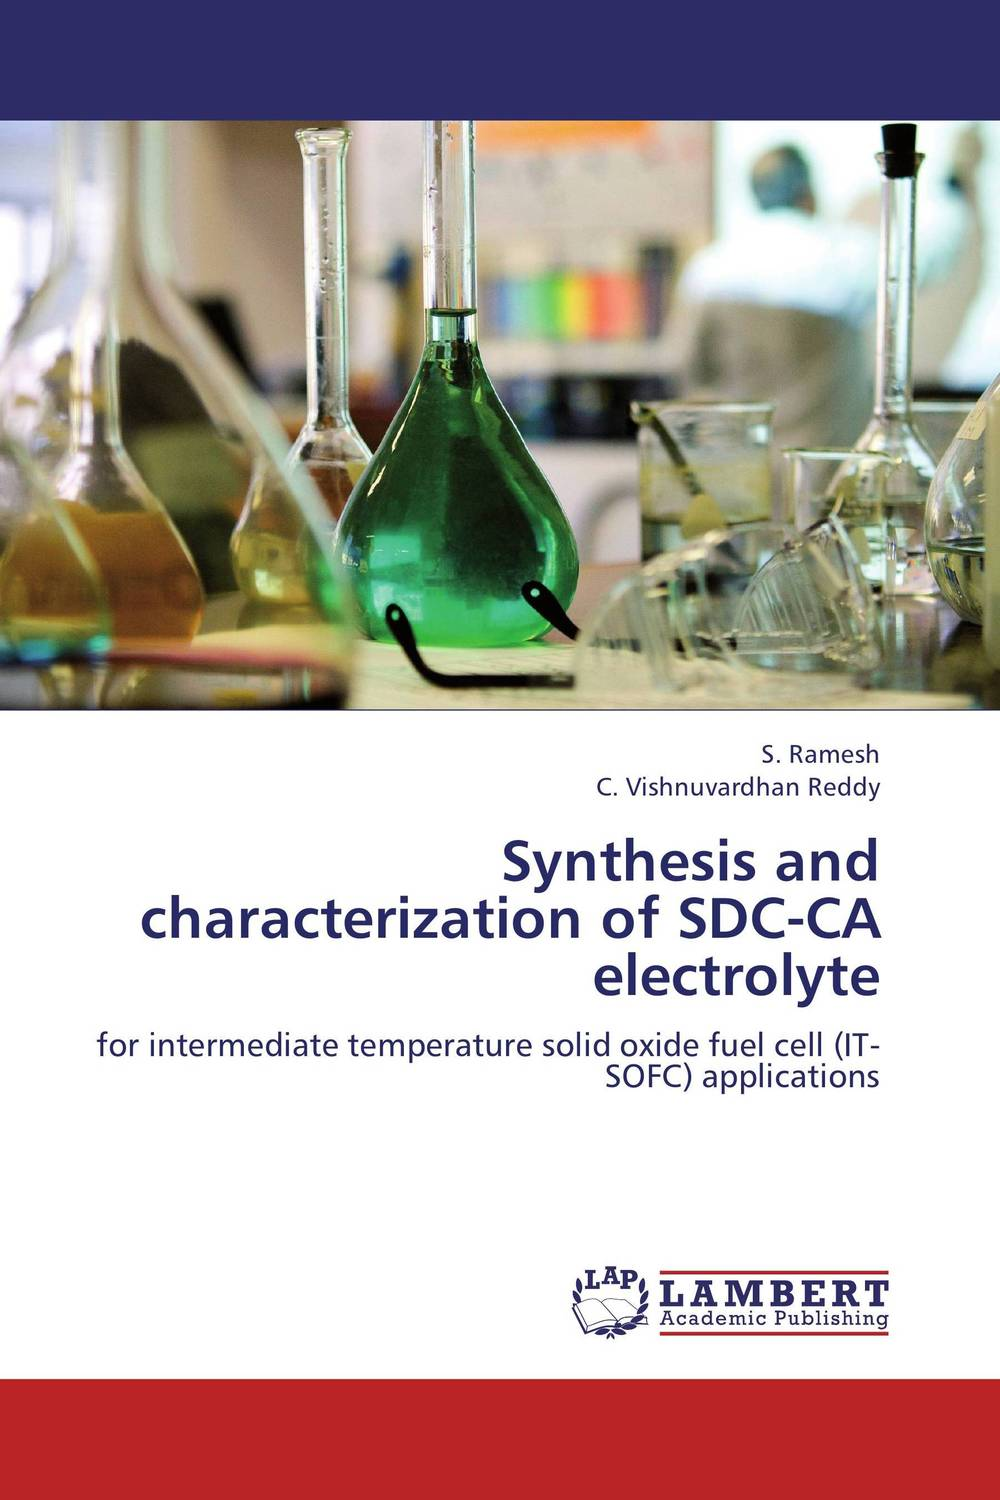 Synthesis and characterization of SDC-CA electrolyte liss david black panther the man without fear volume 1